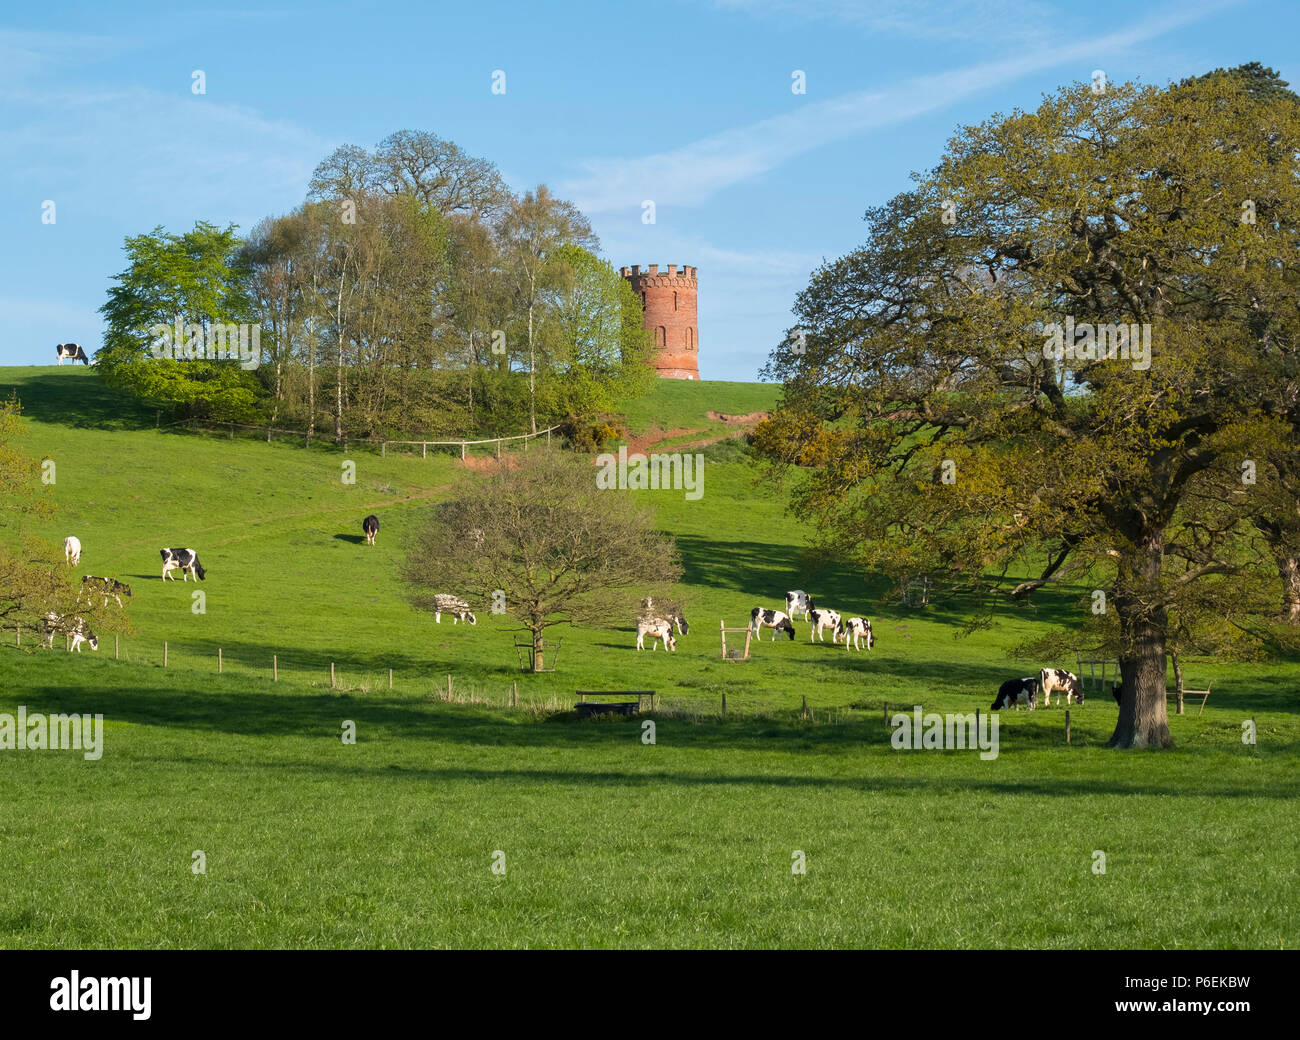 Cattle grazing beside ornate dovecote in the grounds of Davenport House, Worfield, Shropshire, UK - Stock Image